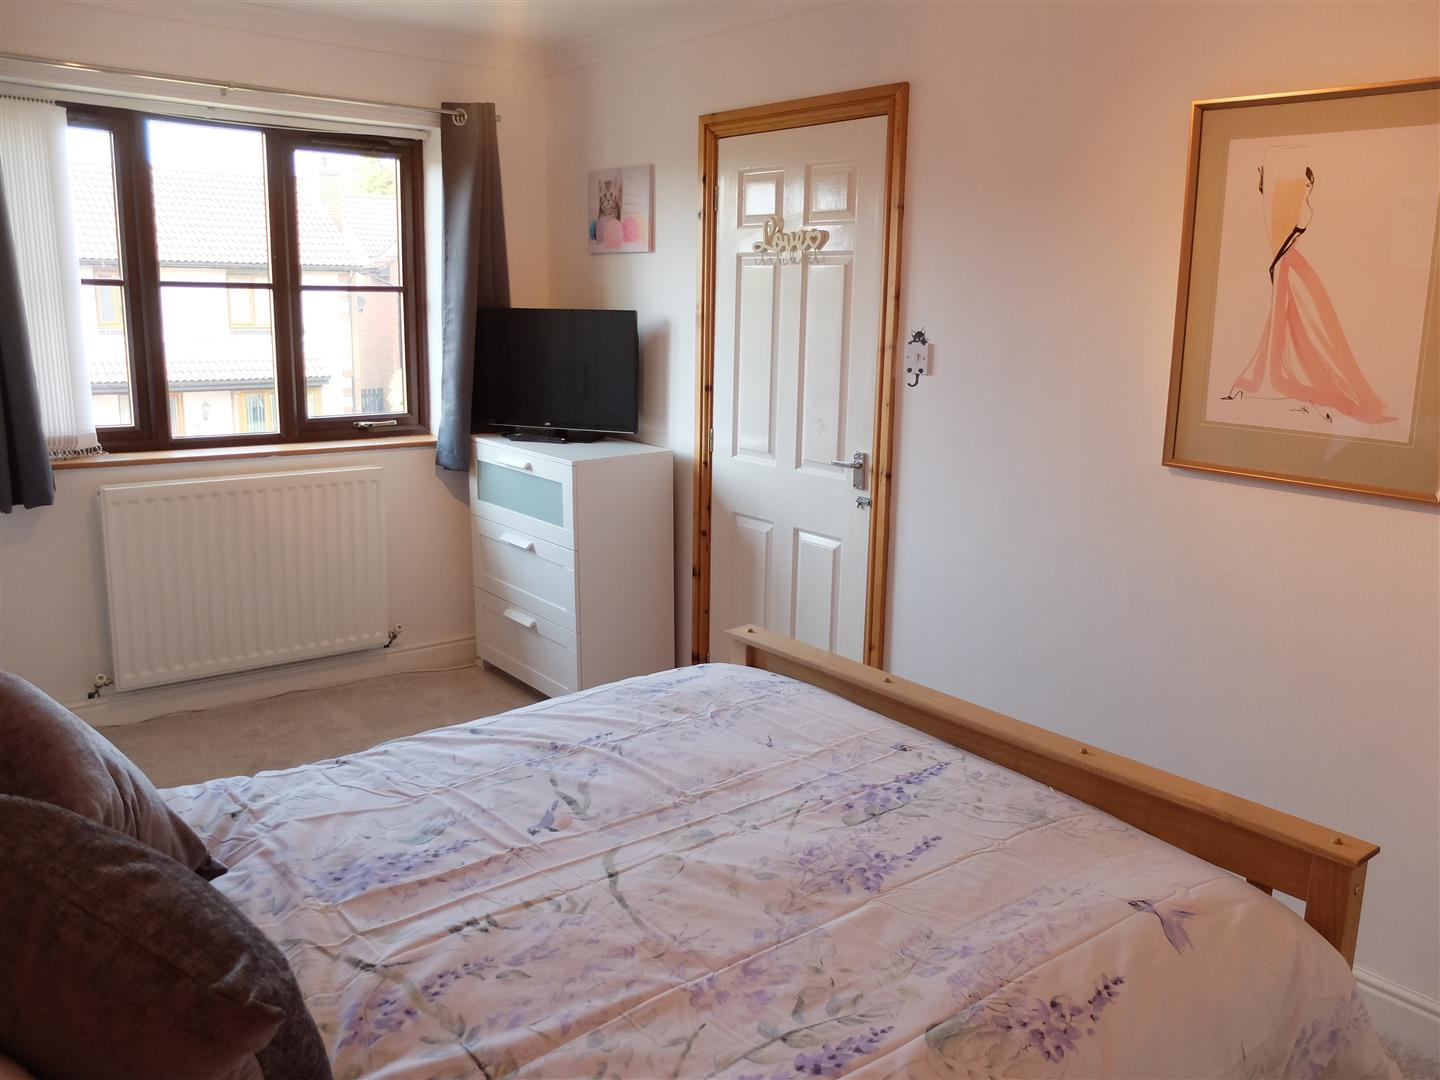 21 Oakleigh Way Carlisle 3 Bedrooms House - Semi-Detached On Sale 169,950